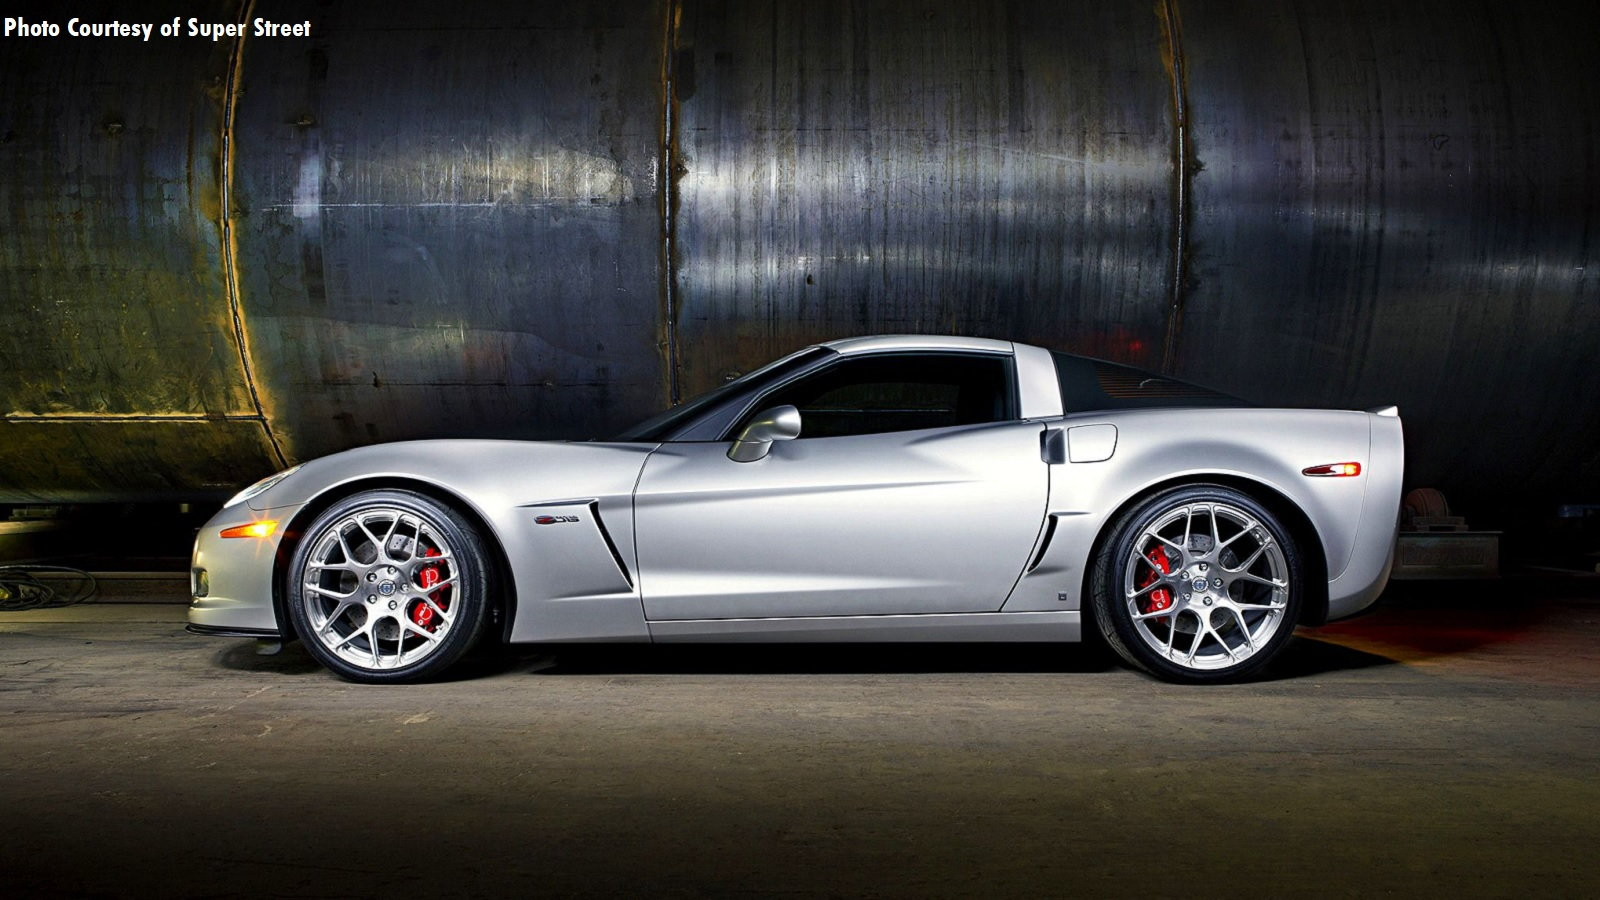 890HP of Deranged Fury in This C6 Z06